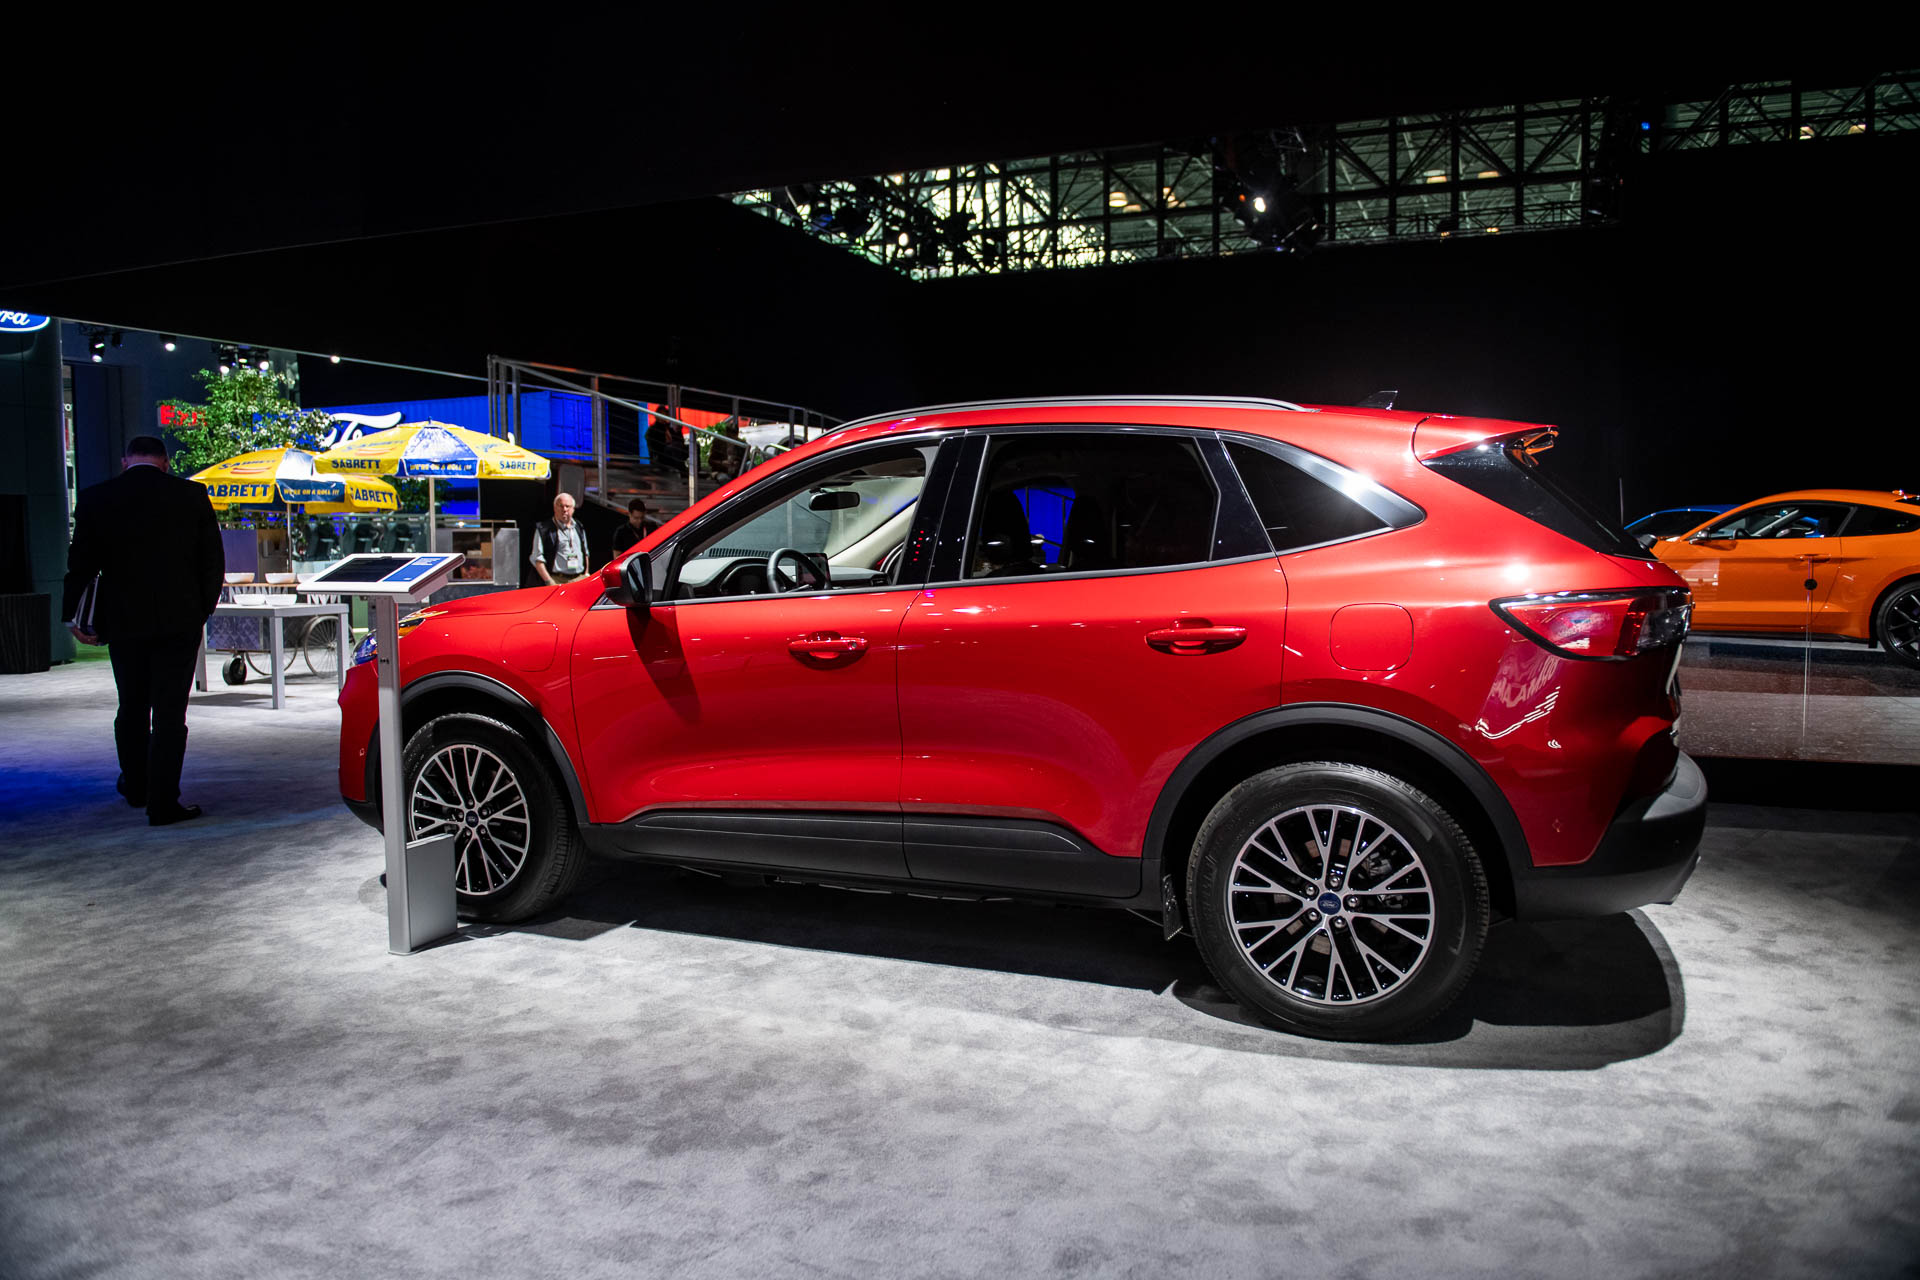 Ford Hybrid Suv >> 2020 Ford Escape Revealed Crossover Suv Brings Plug In Hybrid Tech